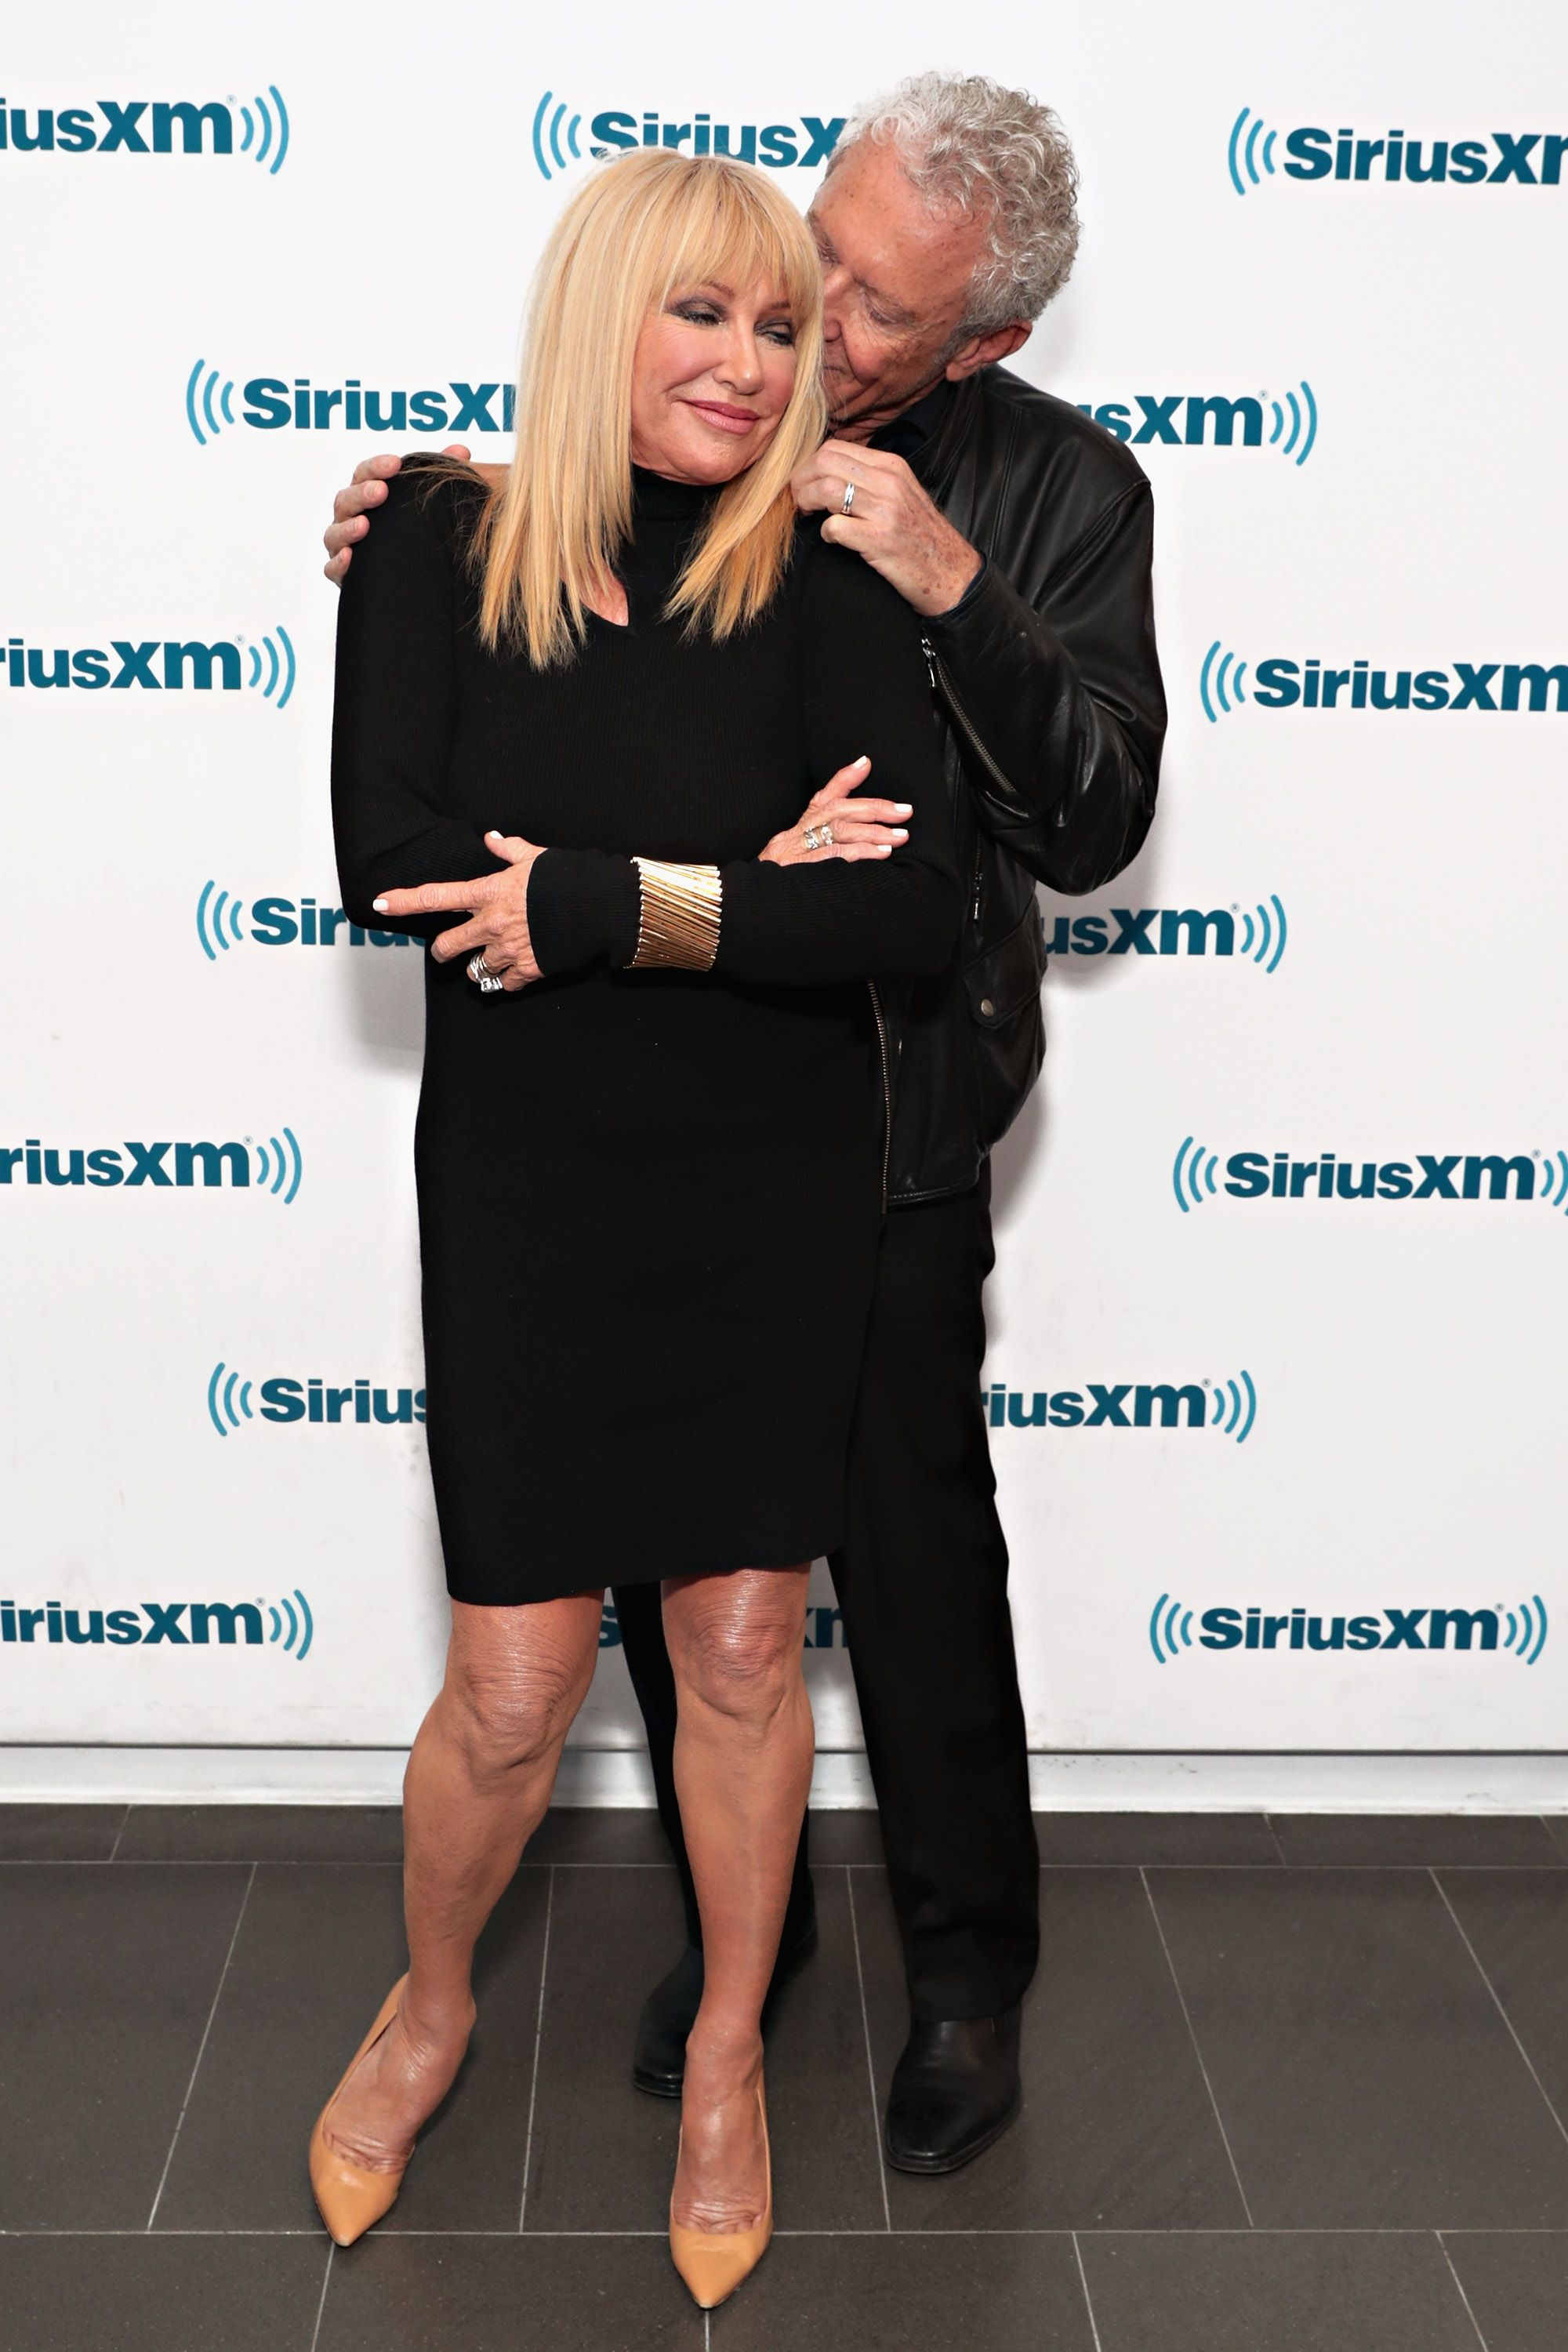 Suzanne Somers and husband Alan Hamel at the SiriusXM Studios in 2017 in New York City | Source: Getty Images